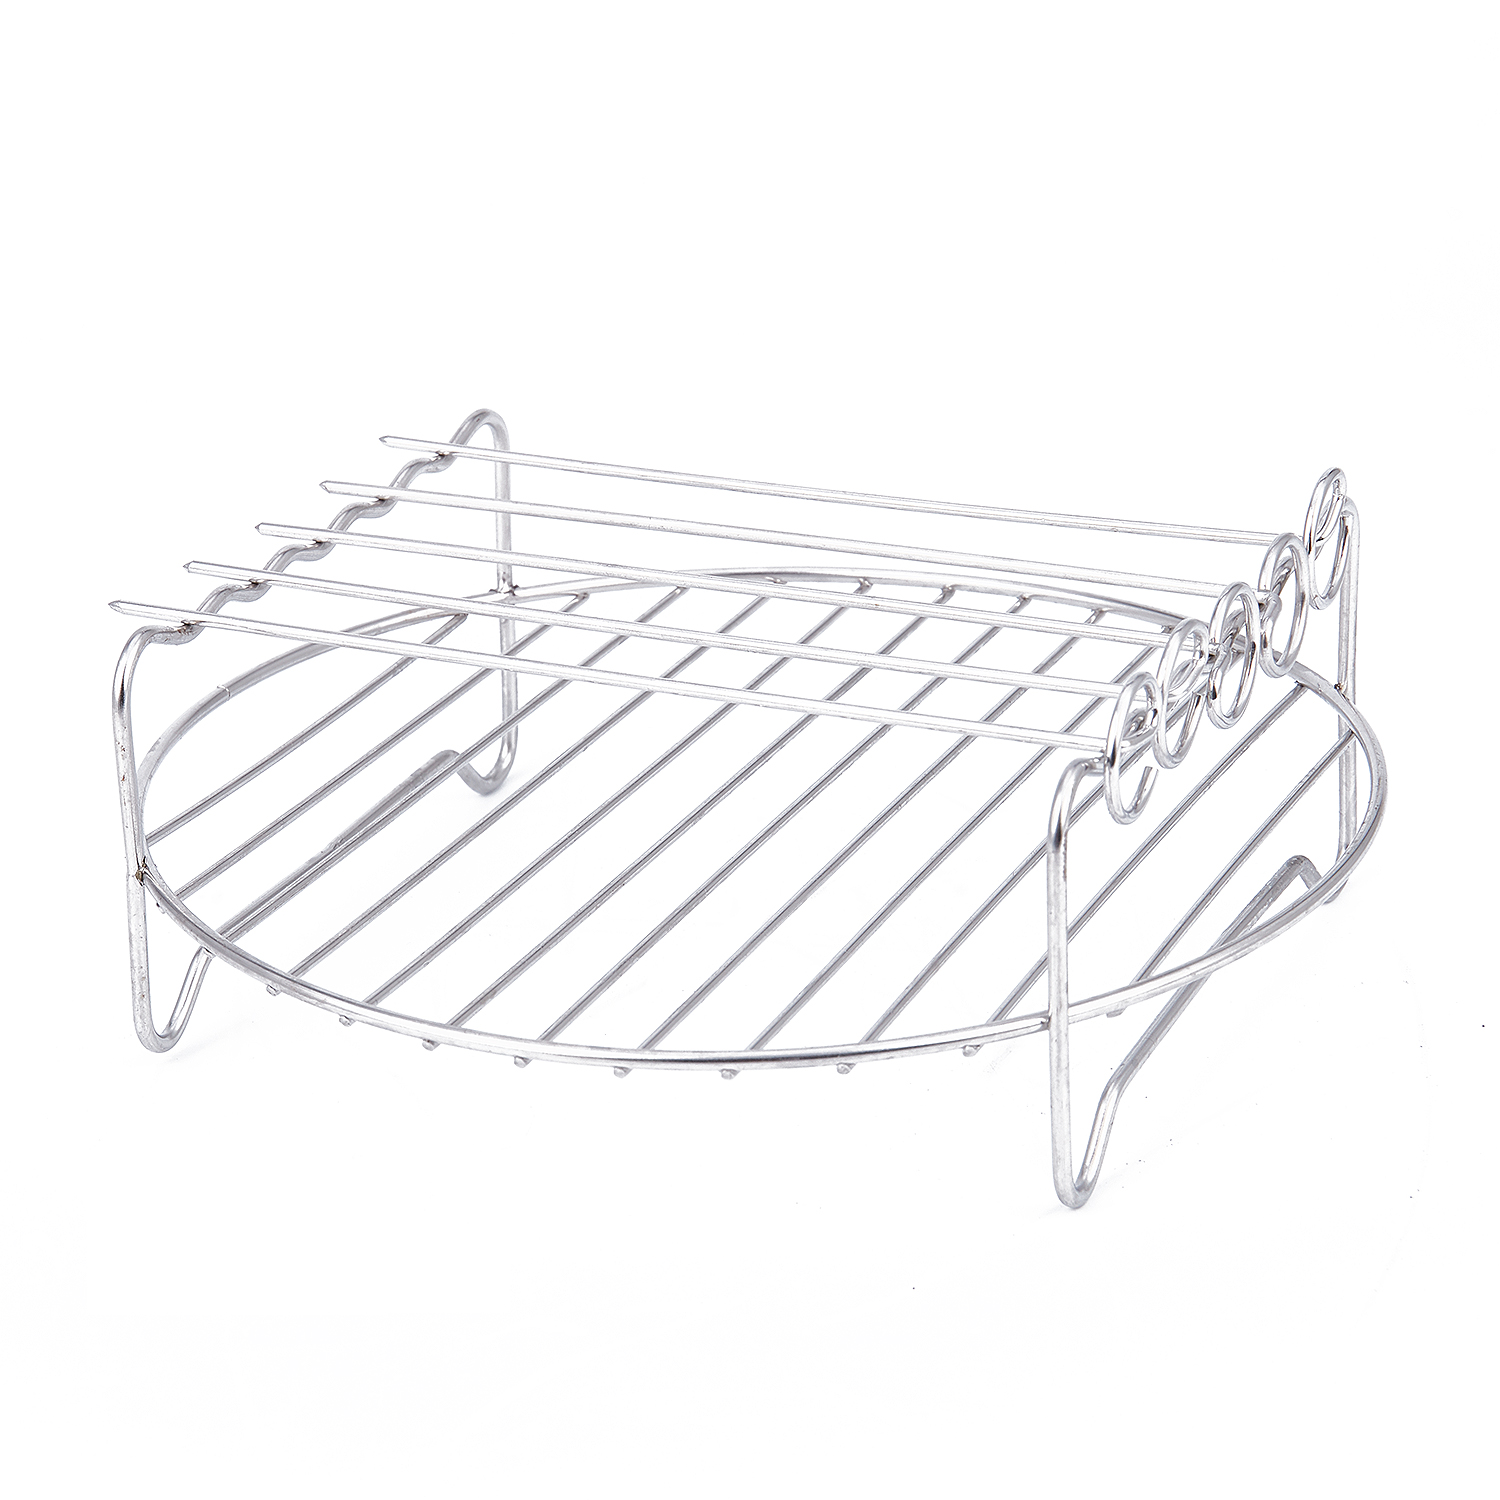 Double Layer Rack Accessory With 5 Skewers For Airfryers In Air Fryers From Home Appliances On